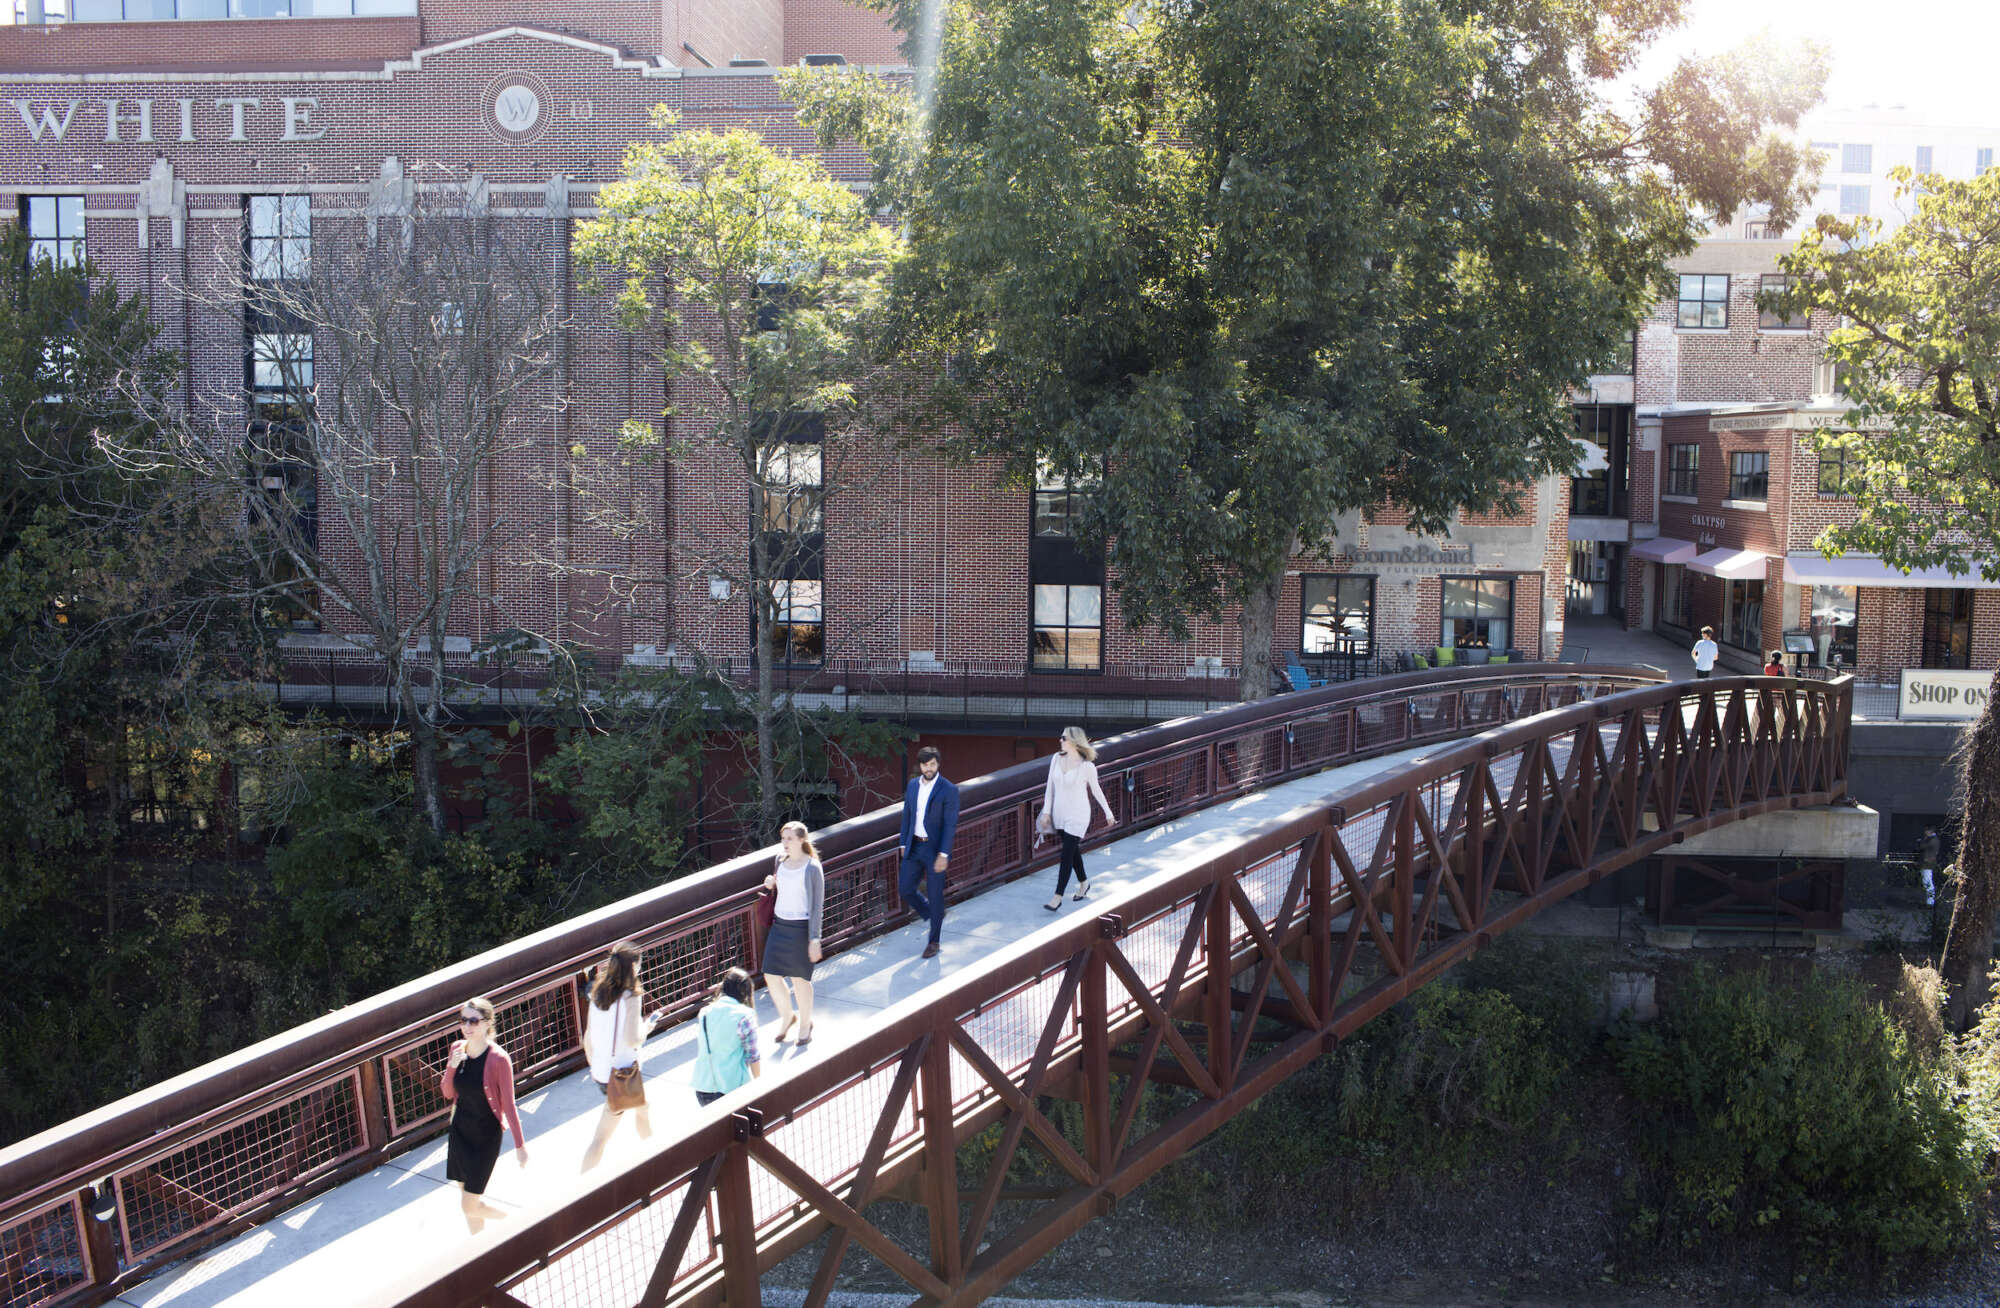 View of the bridge at Westside Provisions District in the daylight with people crossing over